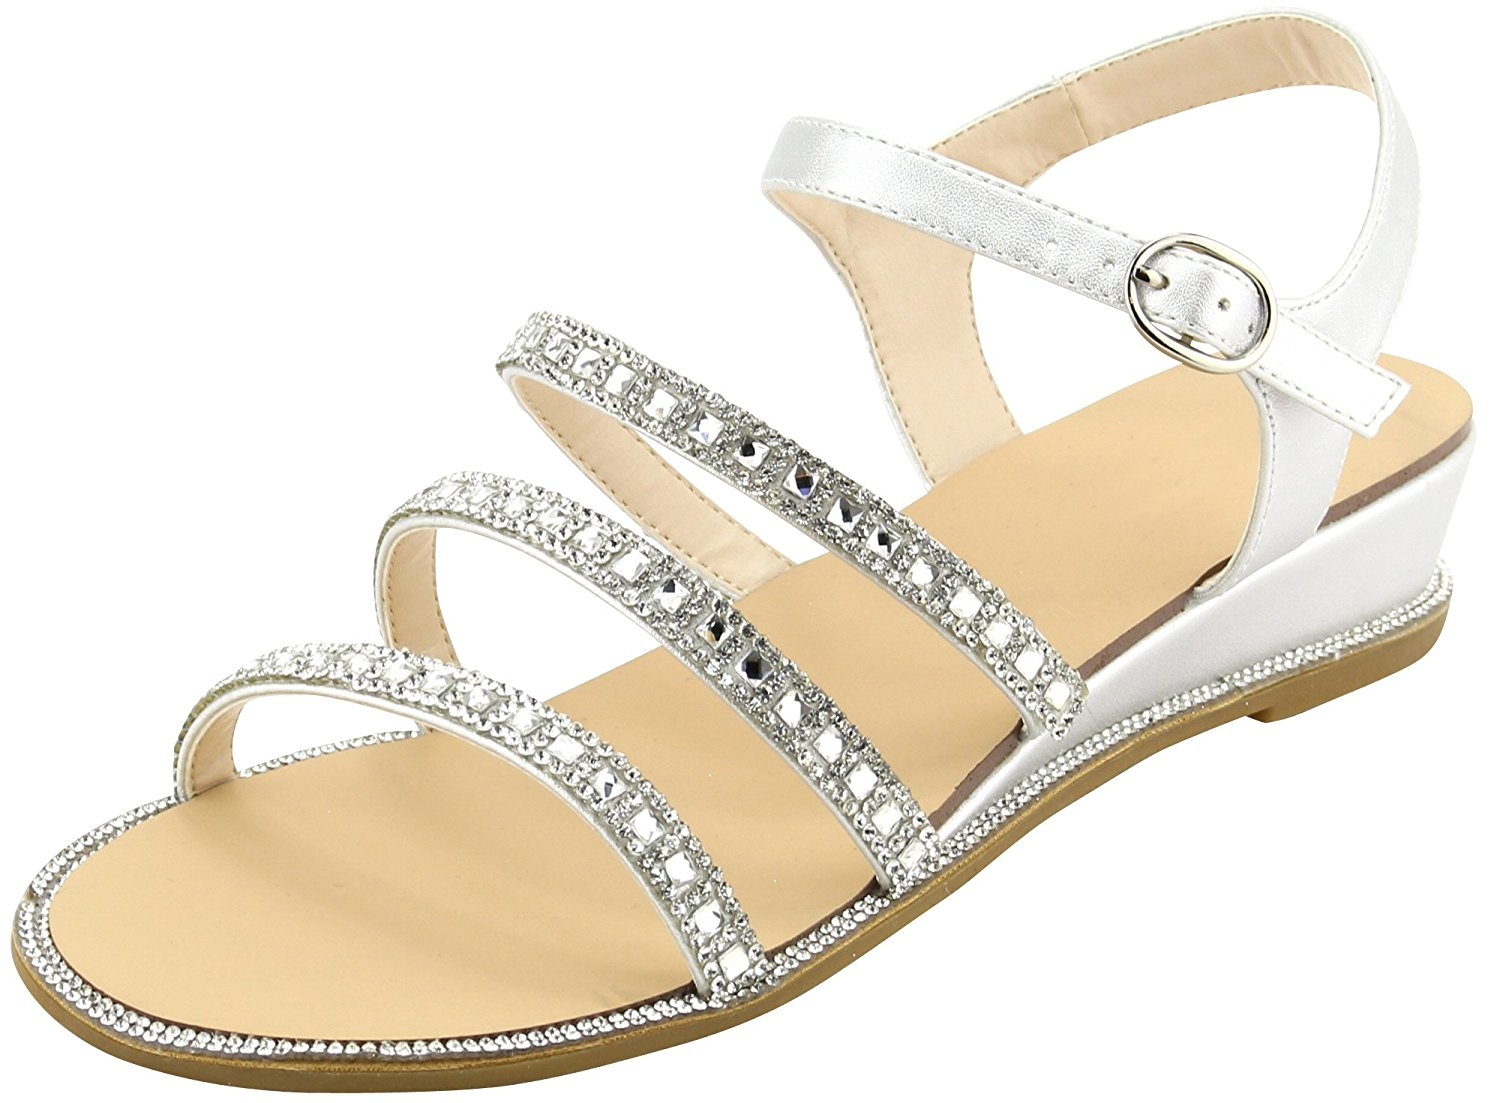 03065abc19f8df Get Quotations · Cambridge Select Women s Open Toe Strappy Buckle Ankle  Glitter Crystal Rhinestone Low Wedge Sandal